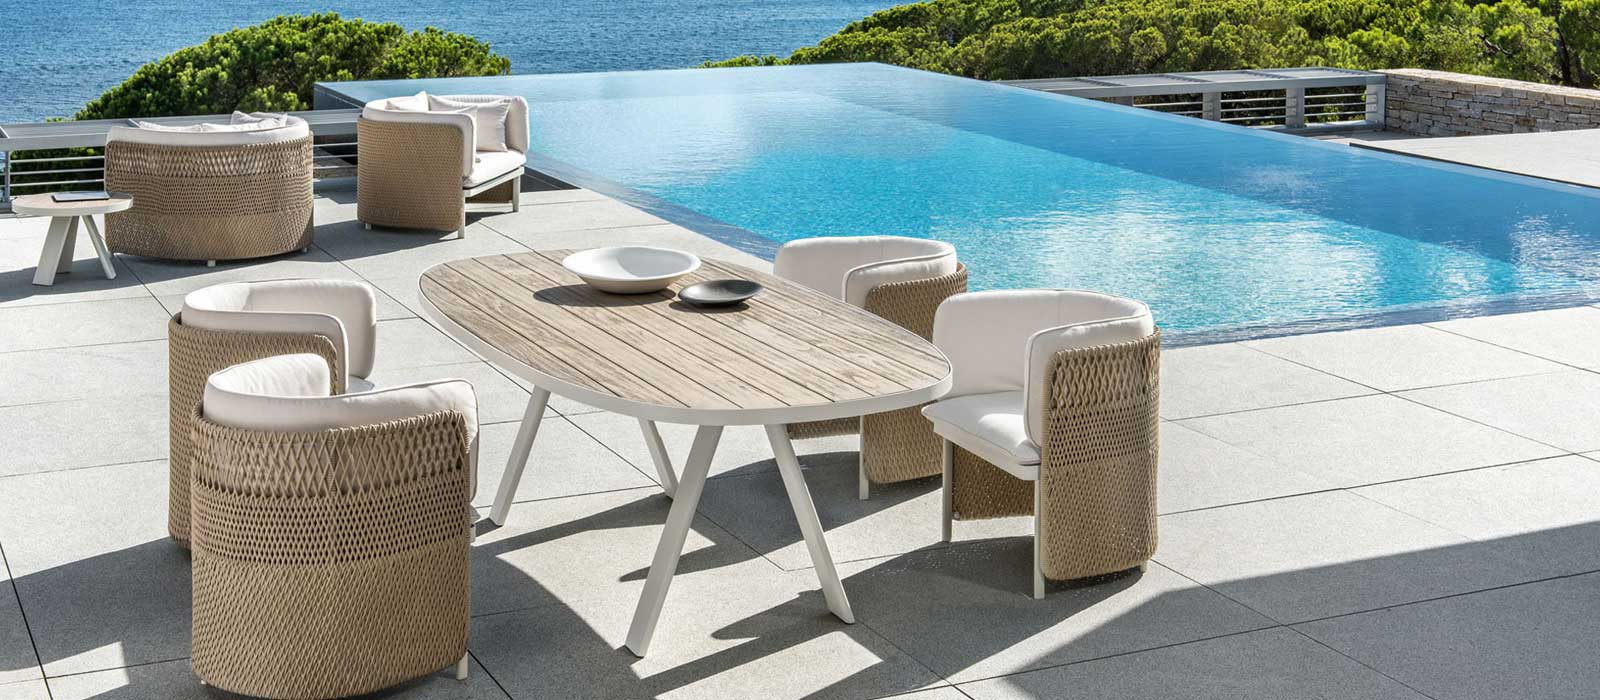 Poolside Furniture Manufacturers in Mira Bhayander